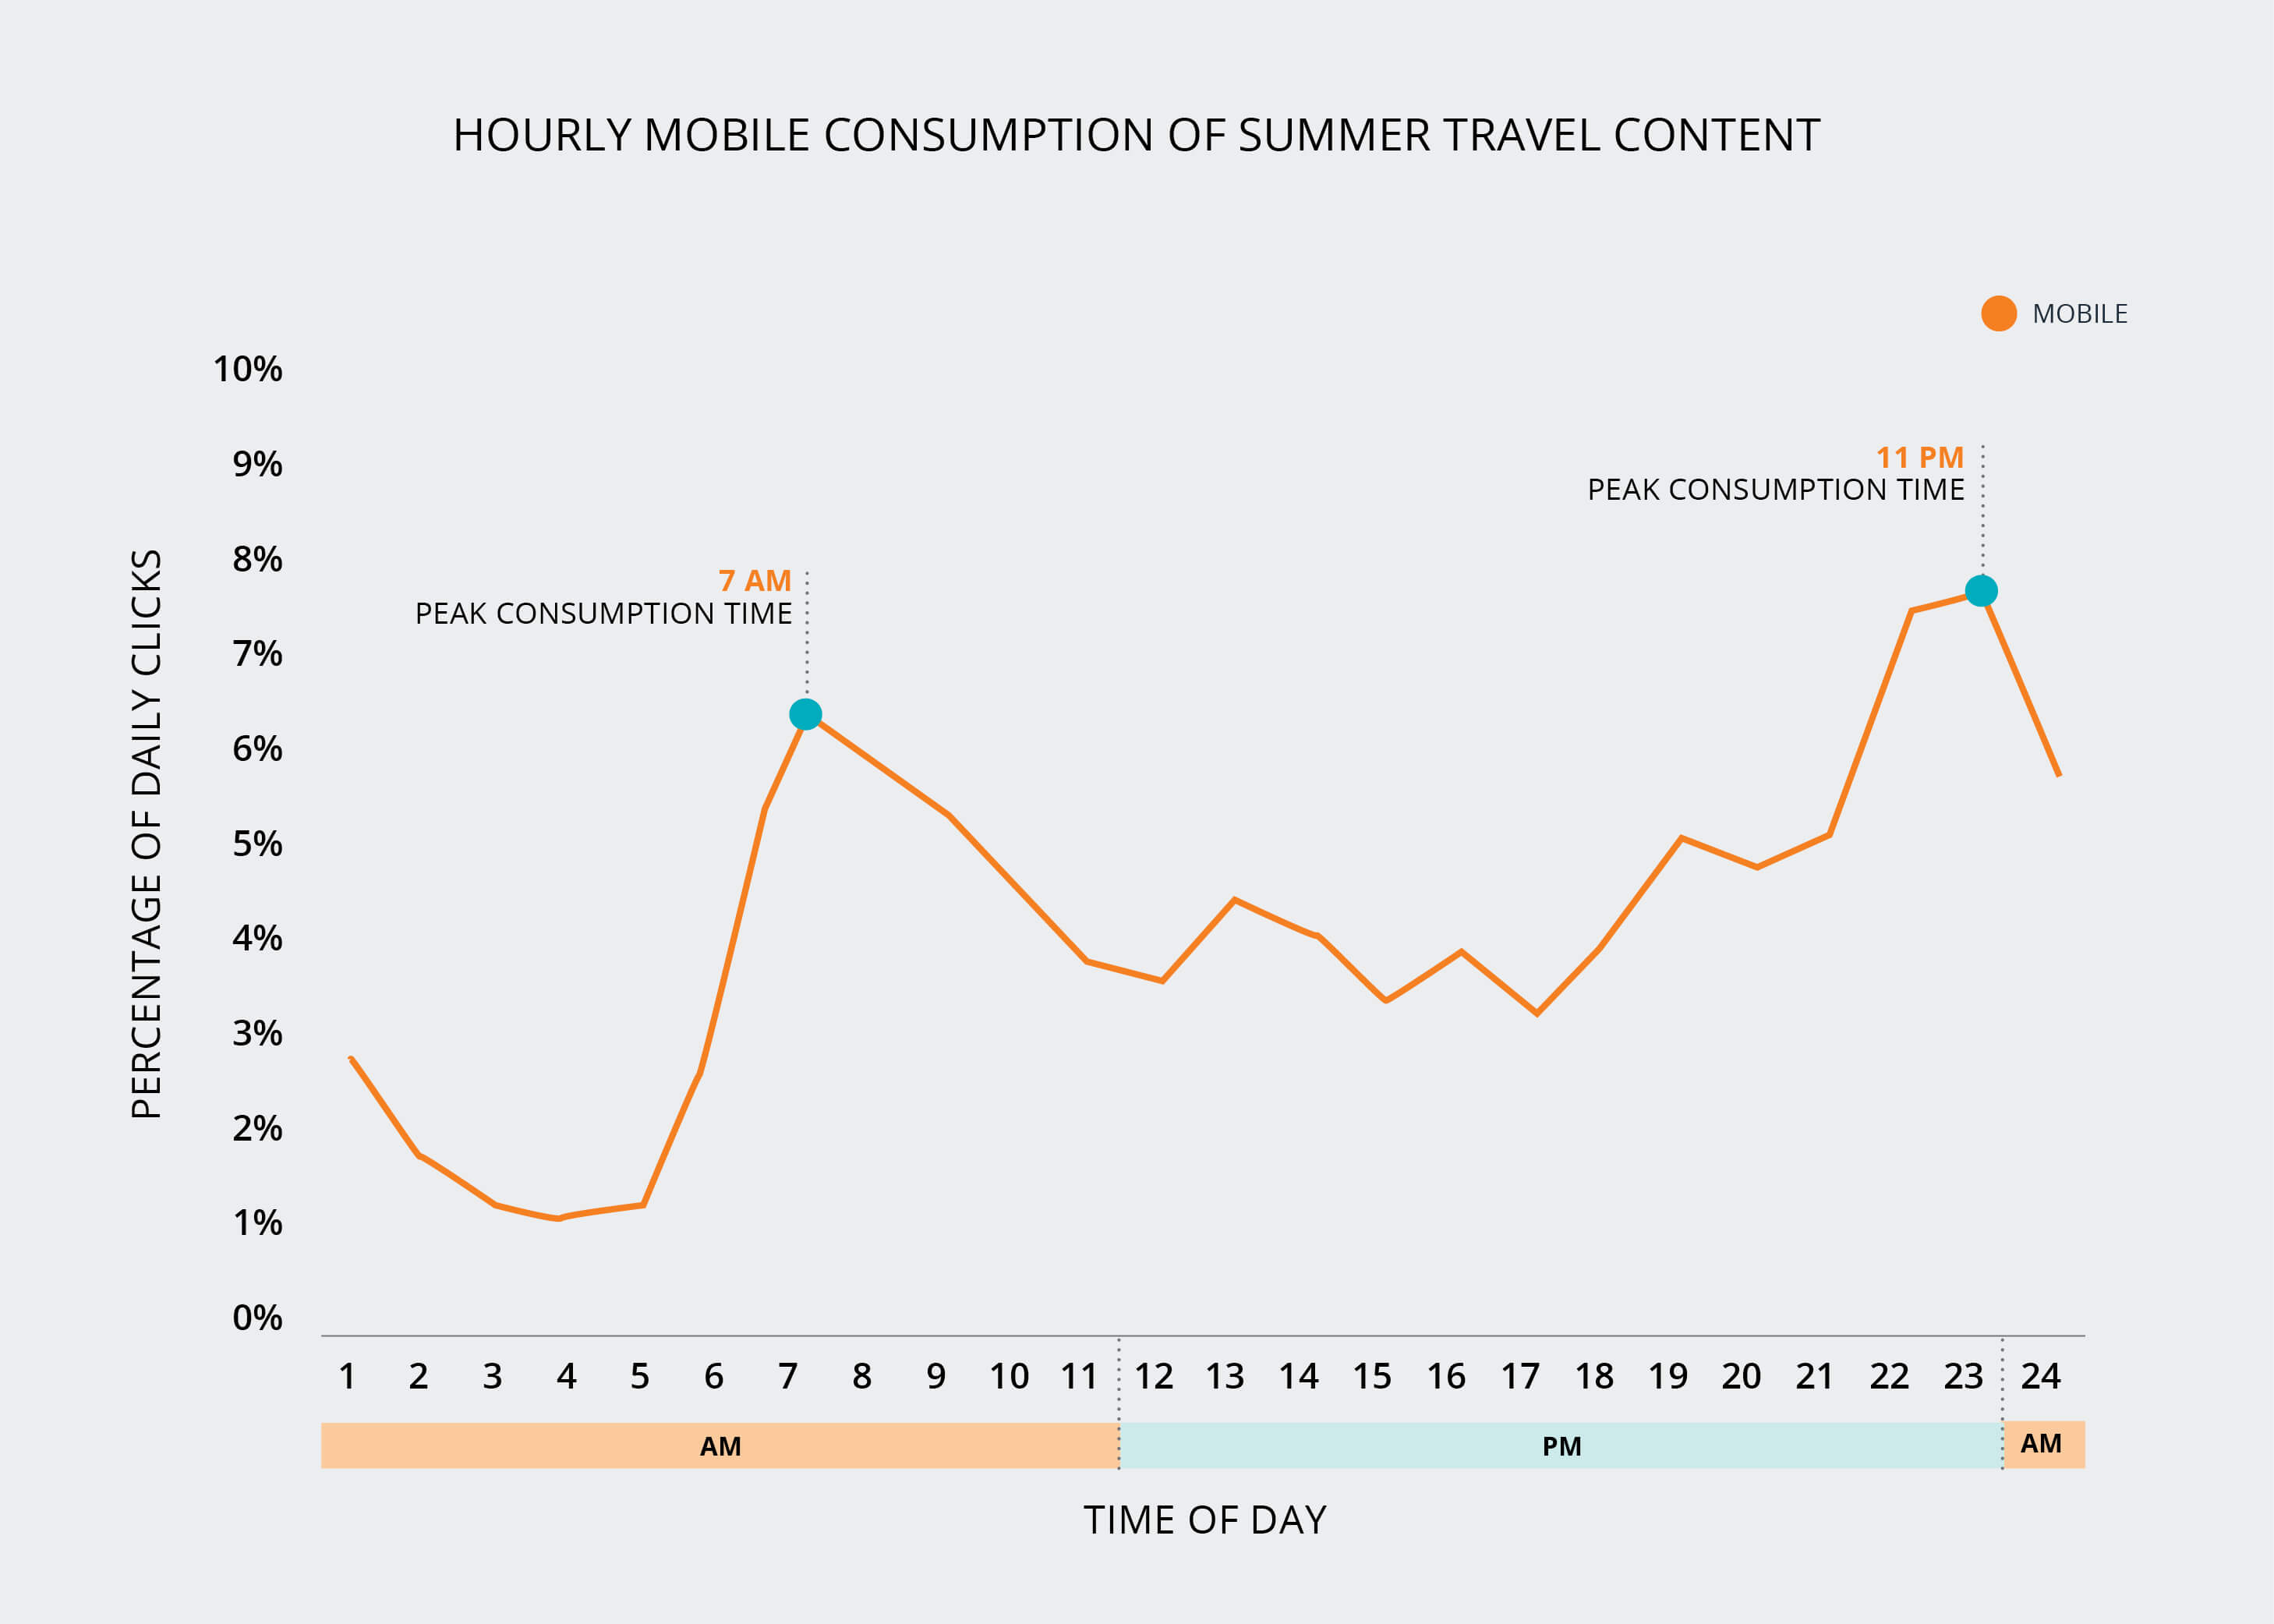 Consumption of summer travel content on mobile